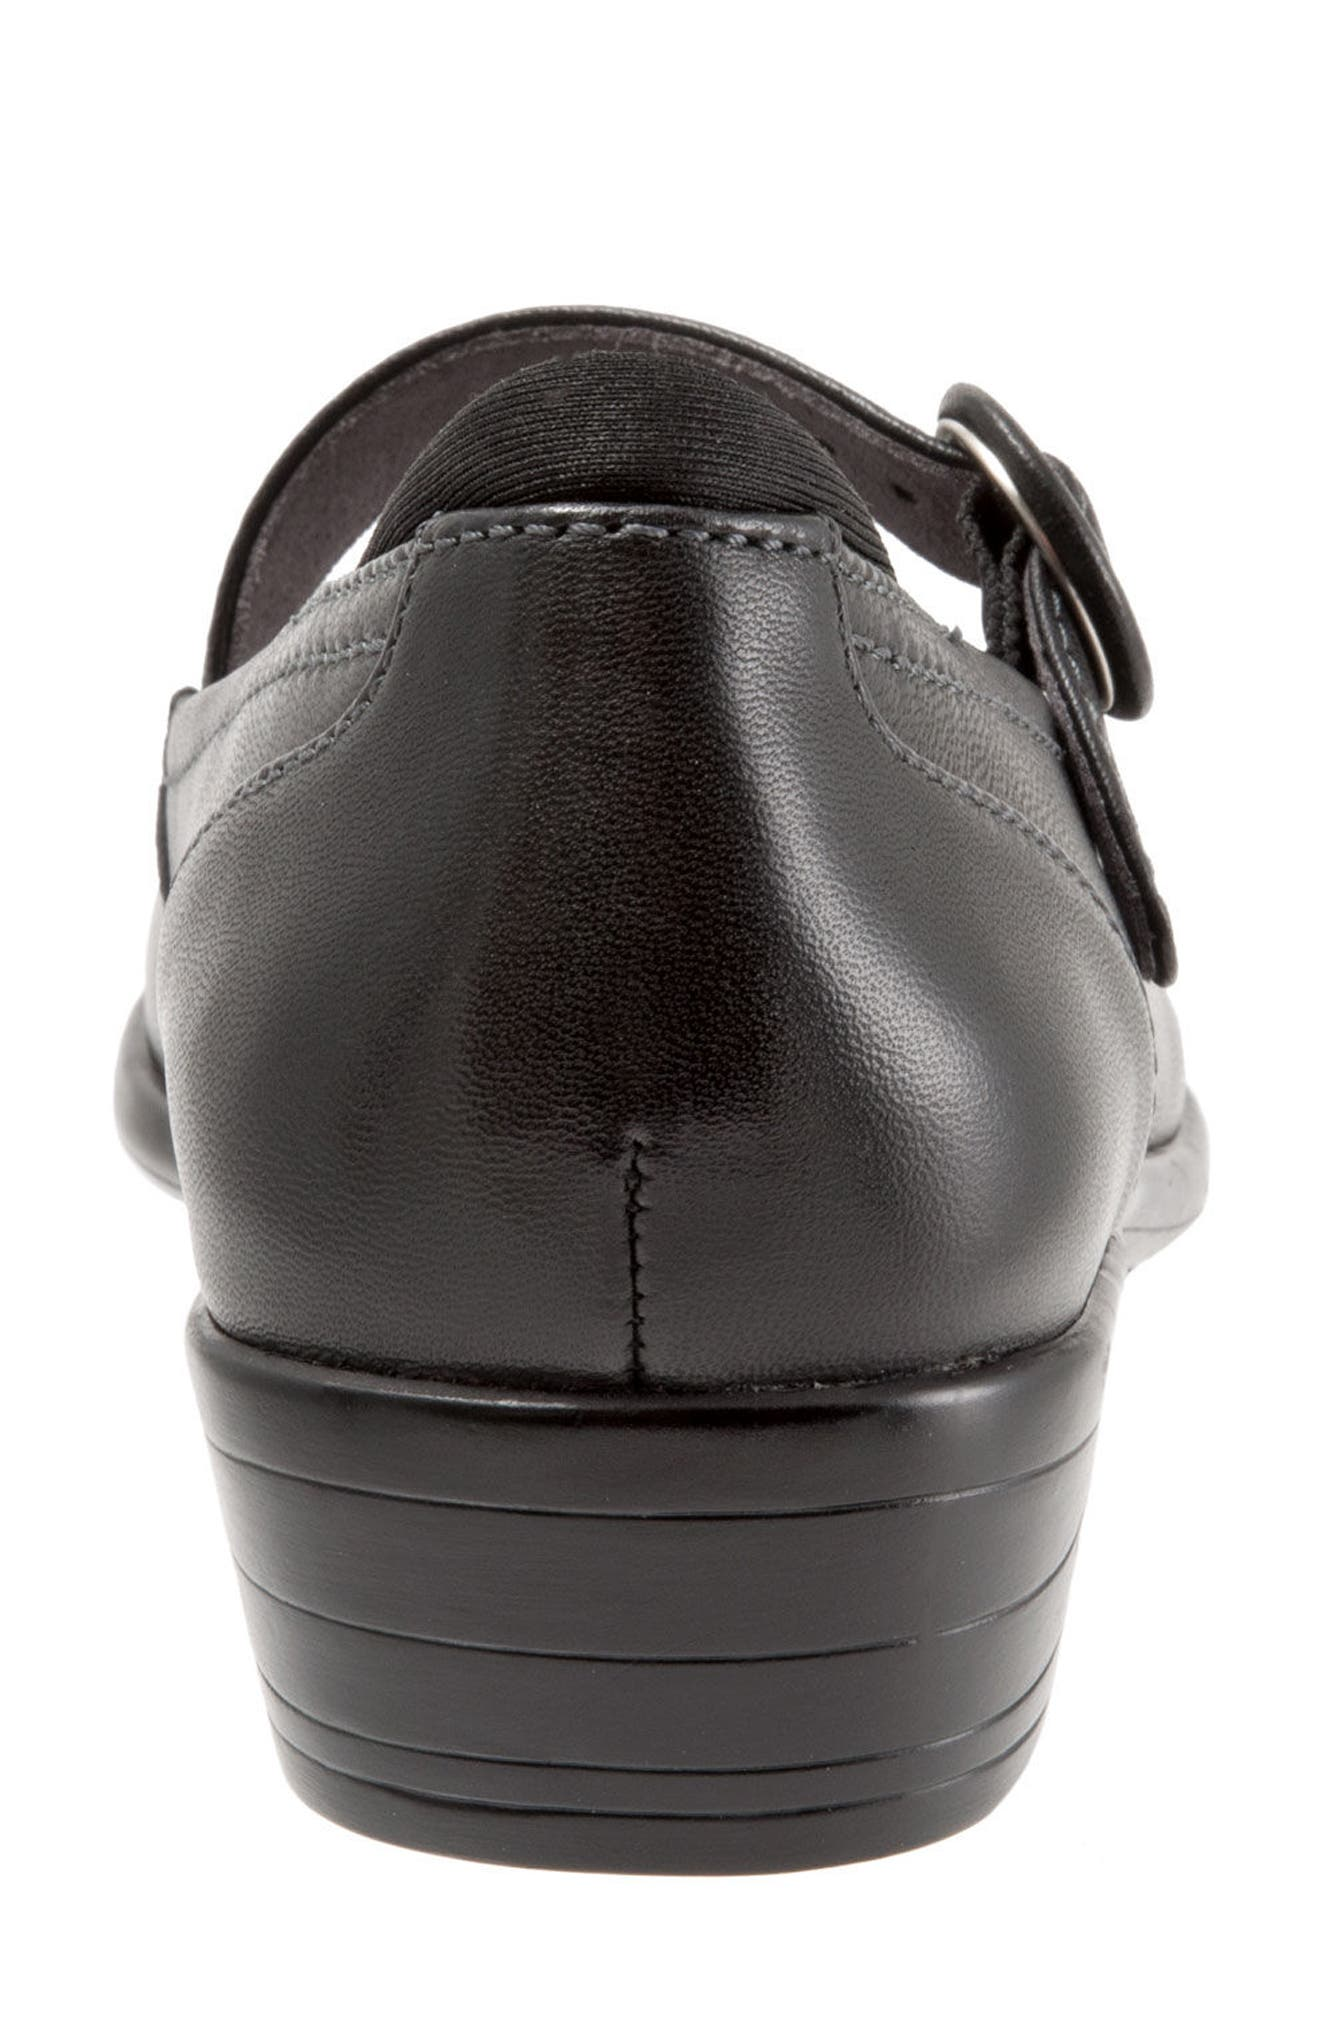 Chatsworth Mary Jane Pump,                             Alternate thumbnail 3, color,                             Black Leather